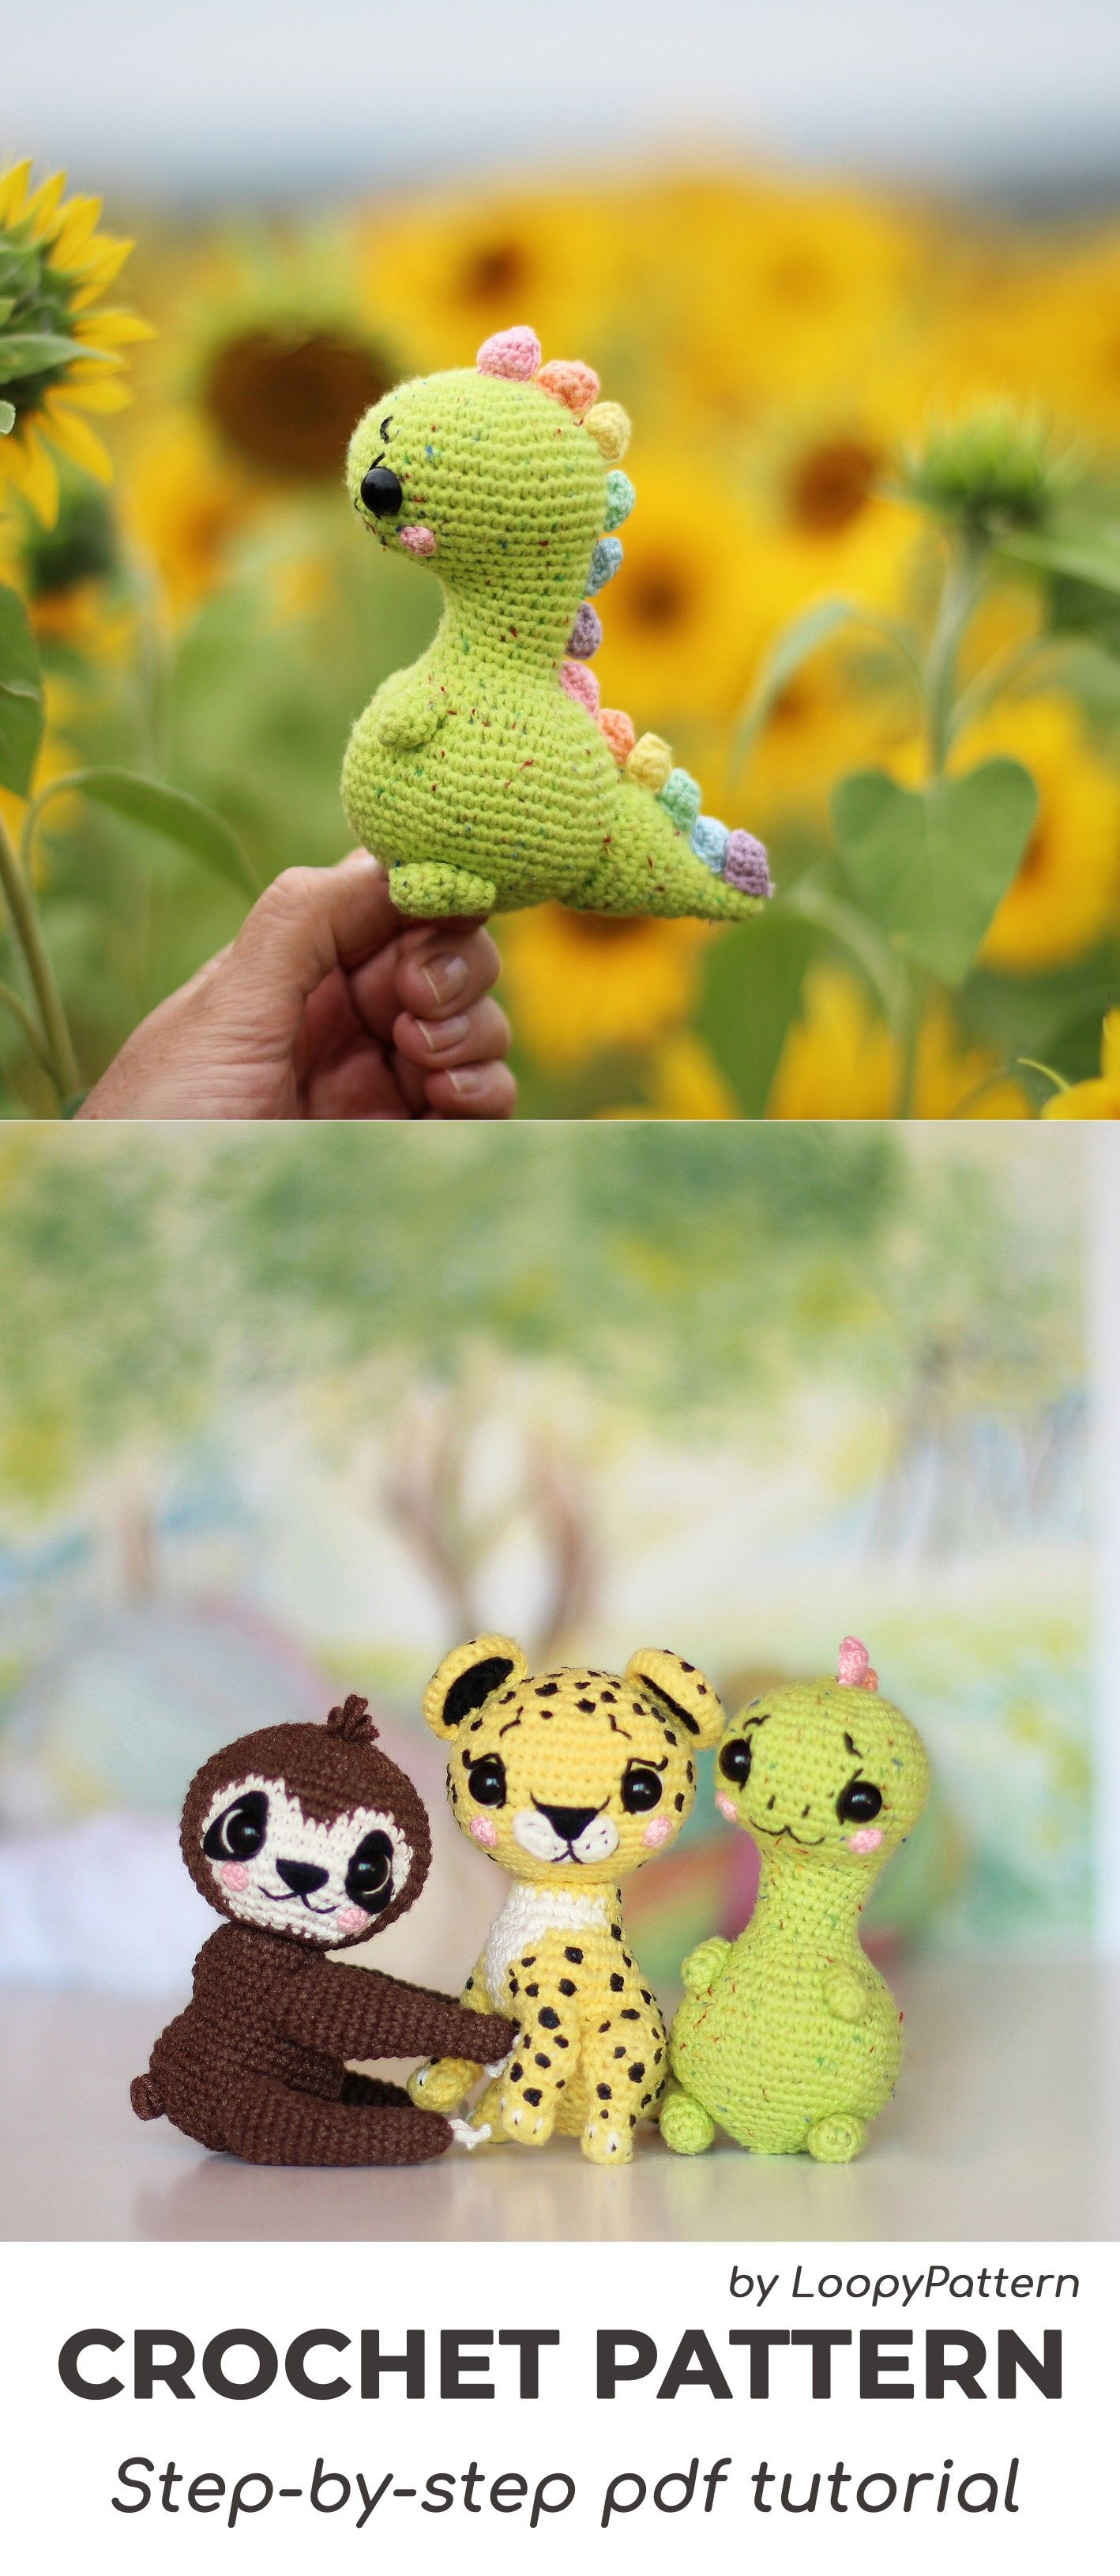 CROCHET toys pdf tutorial by LoopyPattern. Amigurumi dinosaur, crochet sloth, leopard toy, dinosaur tutorial. How crochet  sloth, leopsrd pattern #miniaturetoys